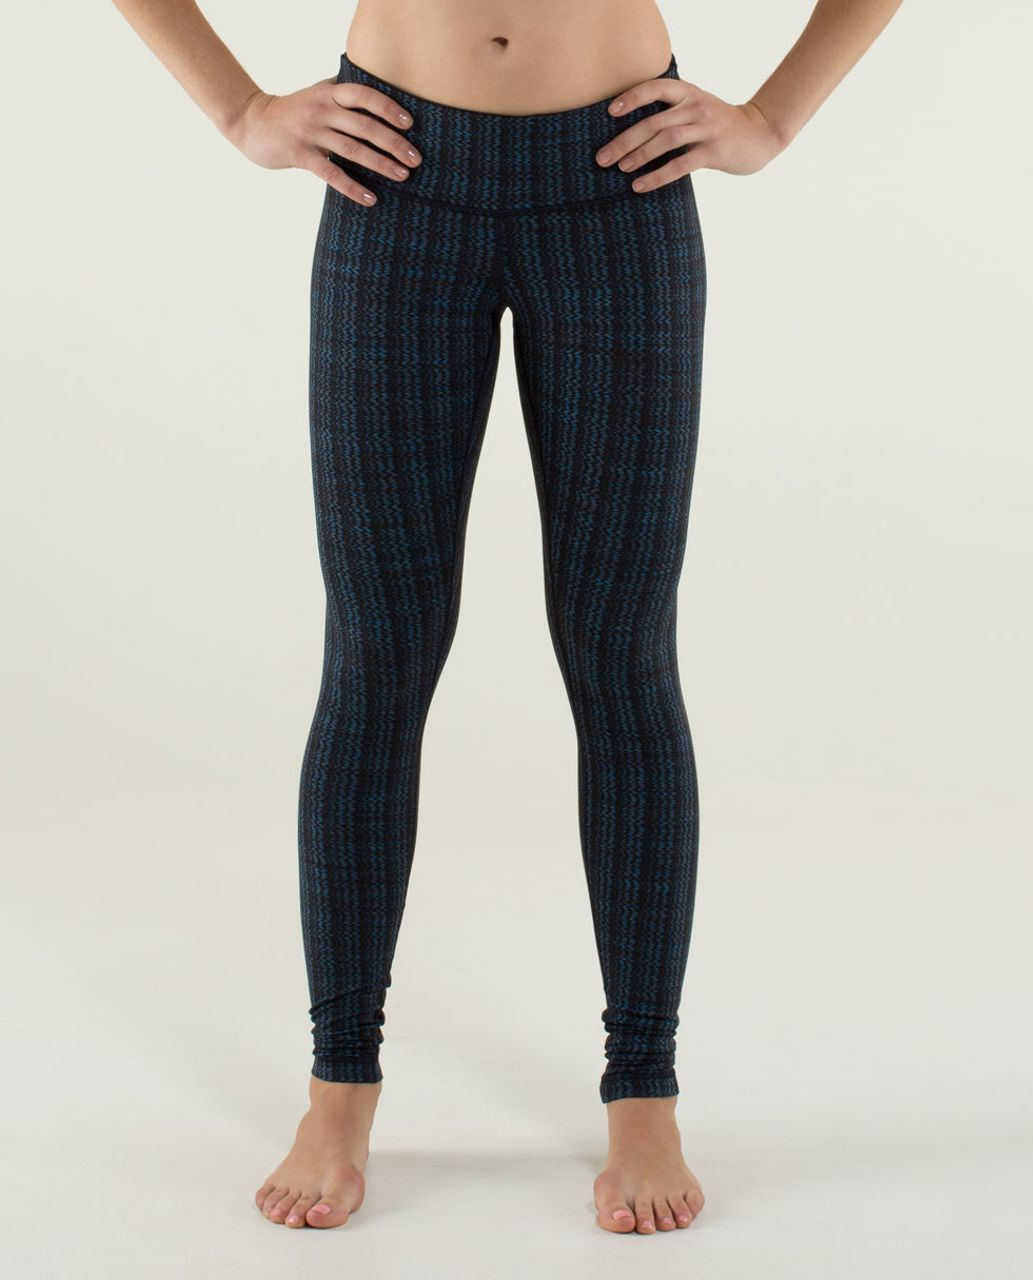 Lululemon Wunder Under Pant - Ziggy Wee October Inkwell / Black